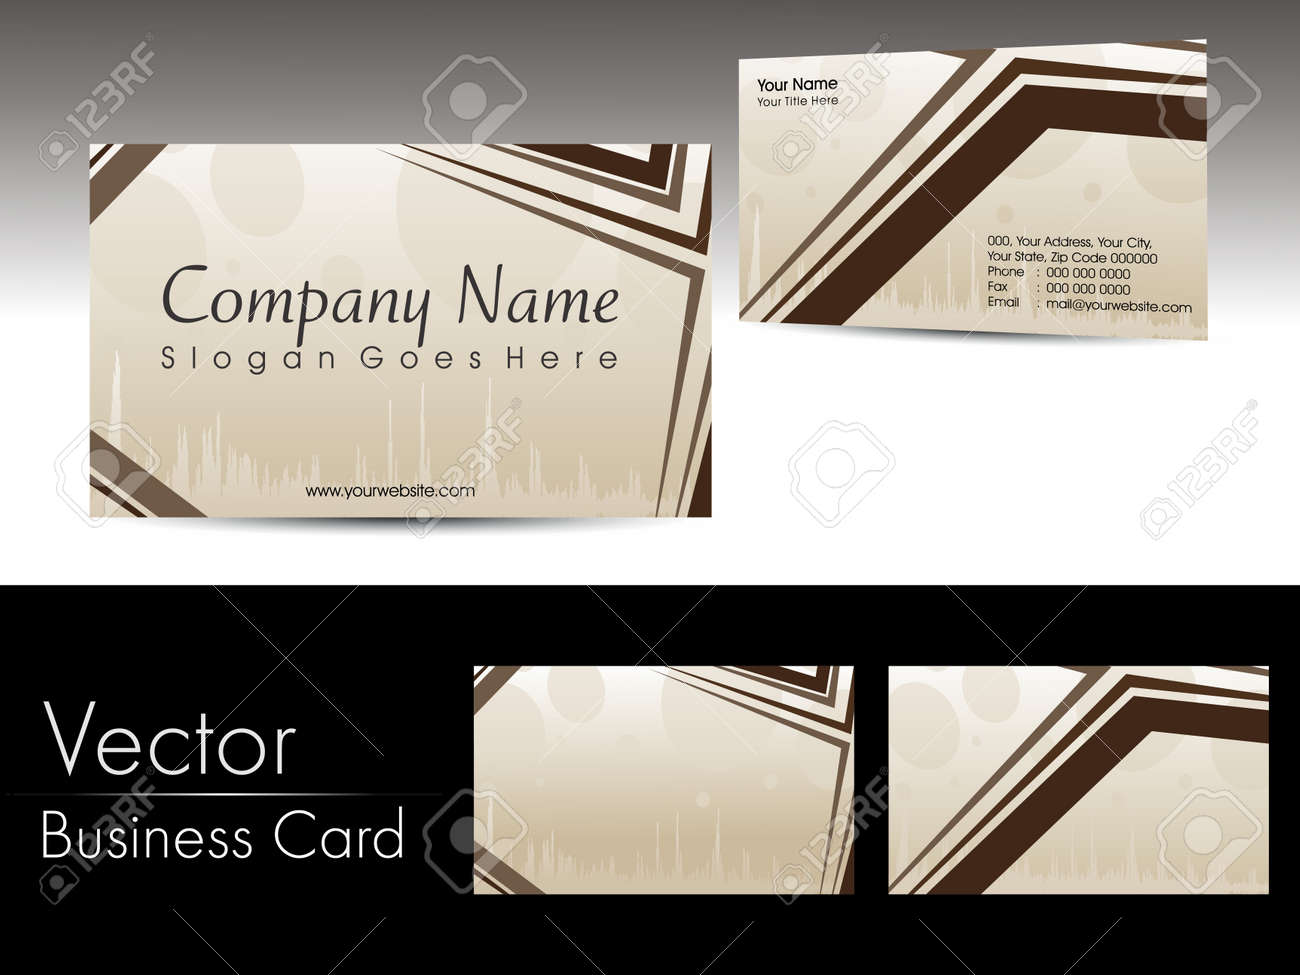 Abstract Artwork Design Vector Corporate Business Cards Royalty Free ...